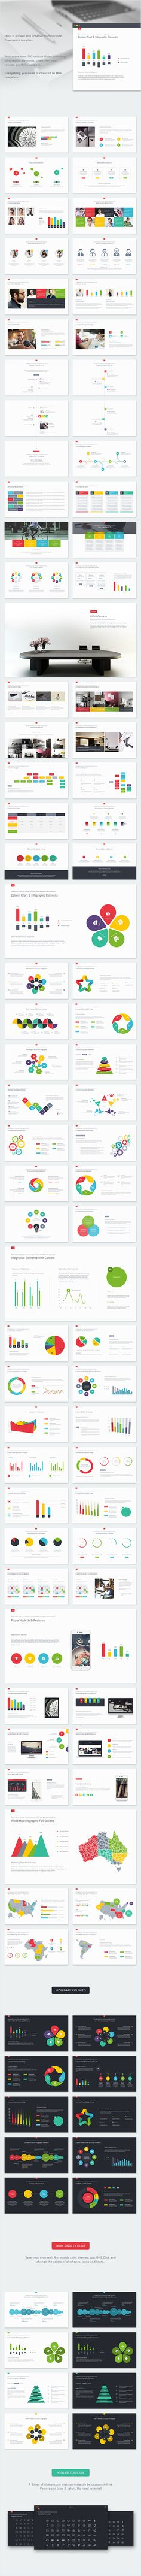 IKON - Multipurpose Presentation Template | GraphicRiver